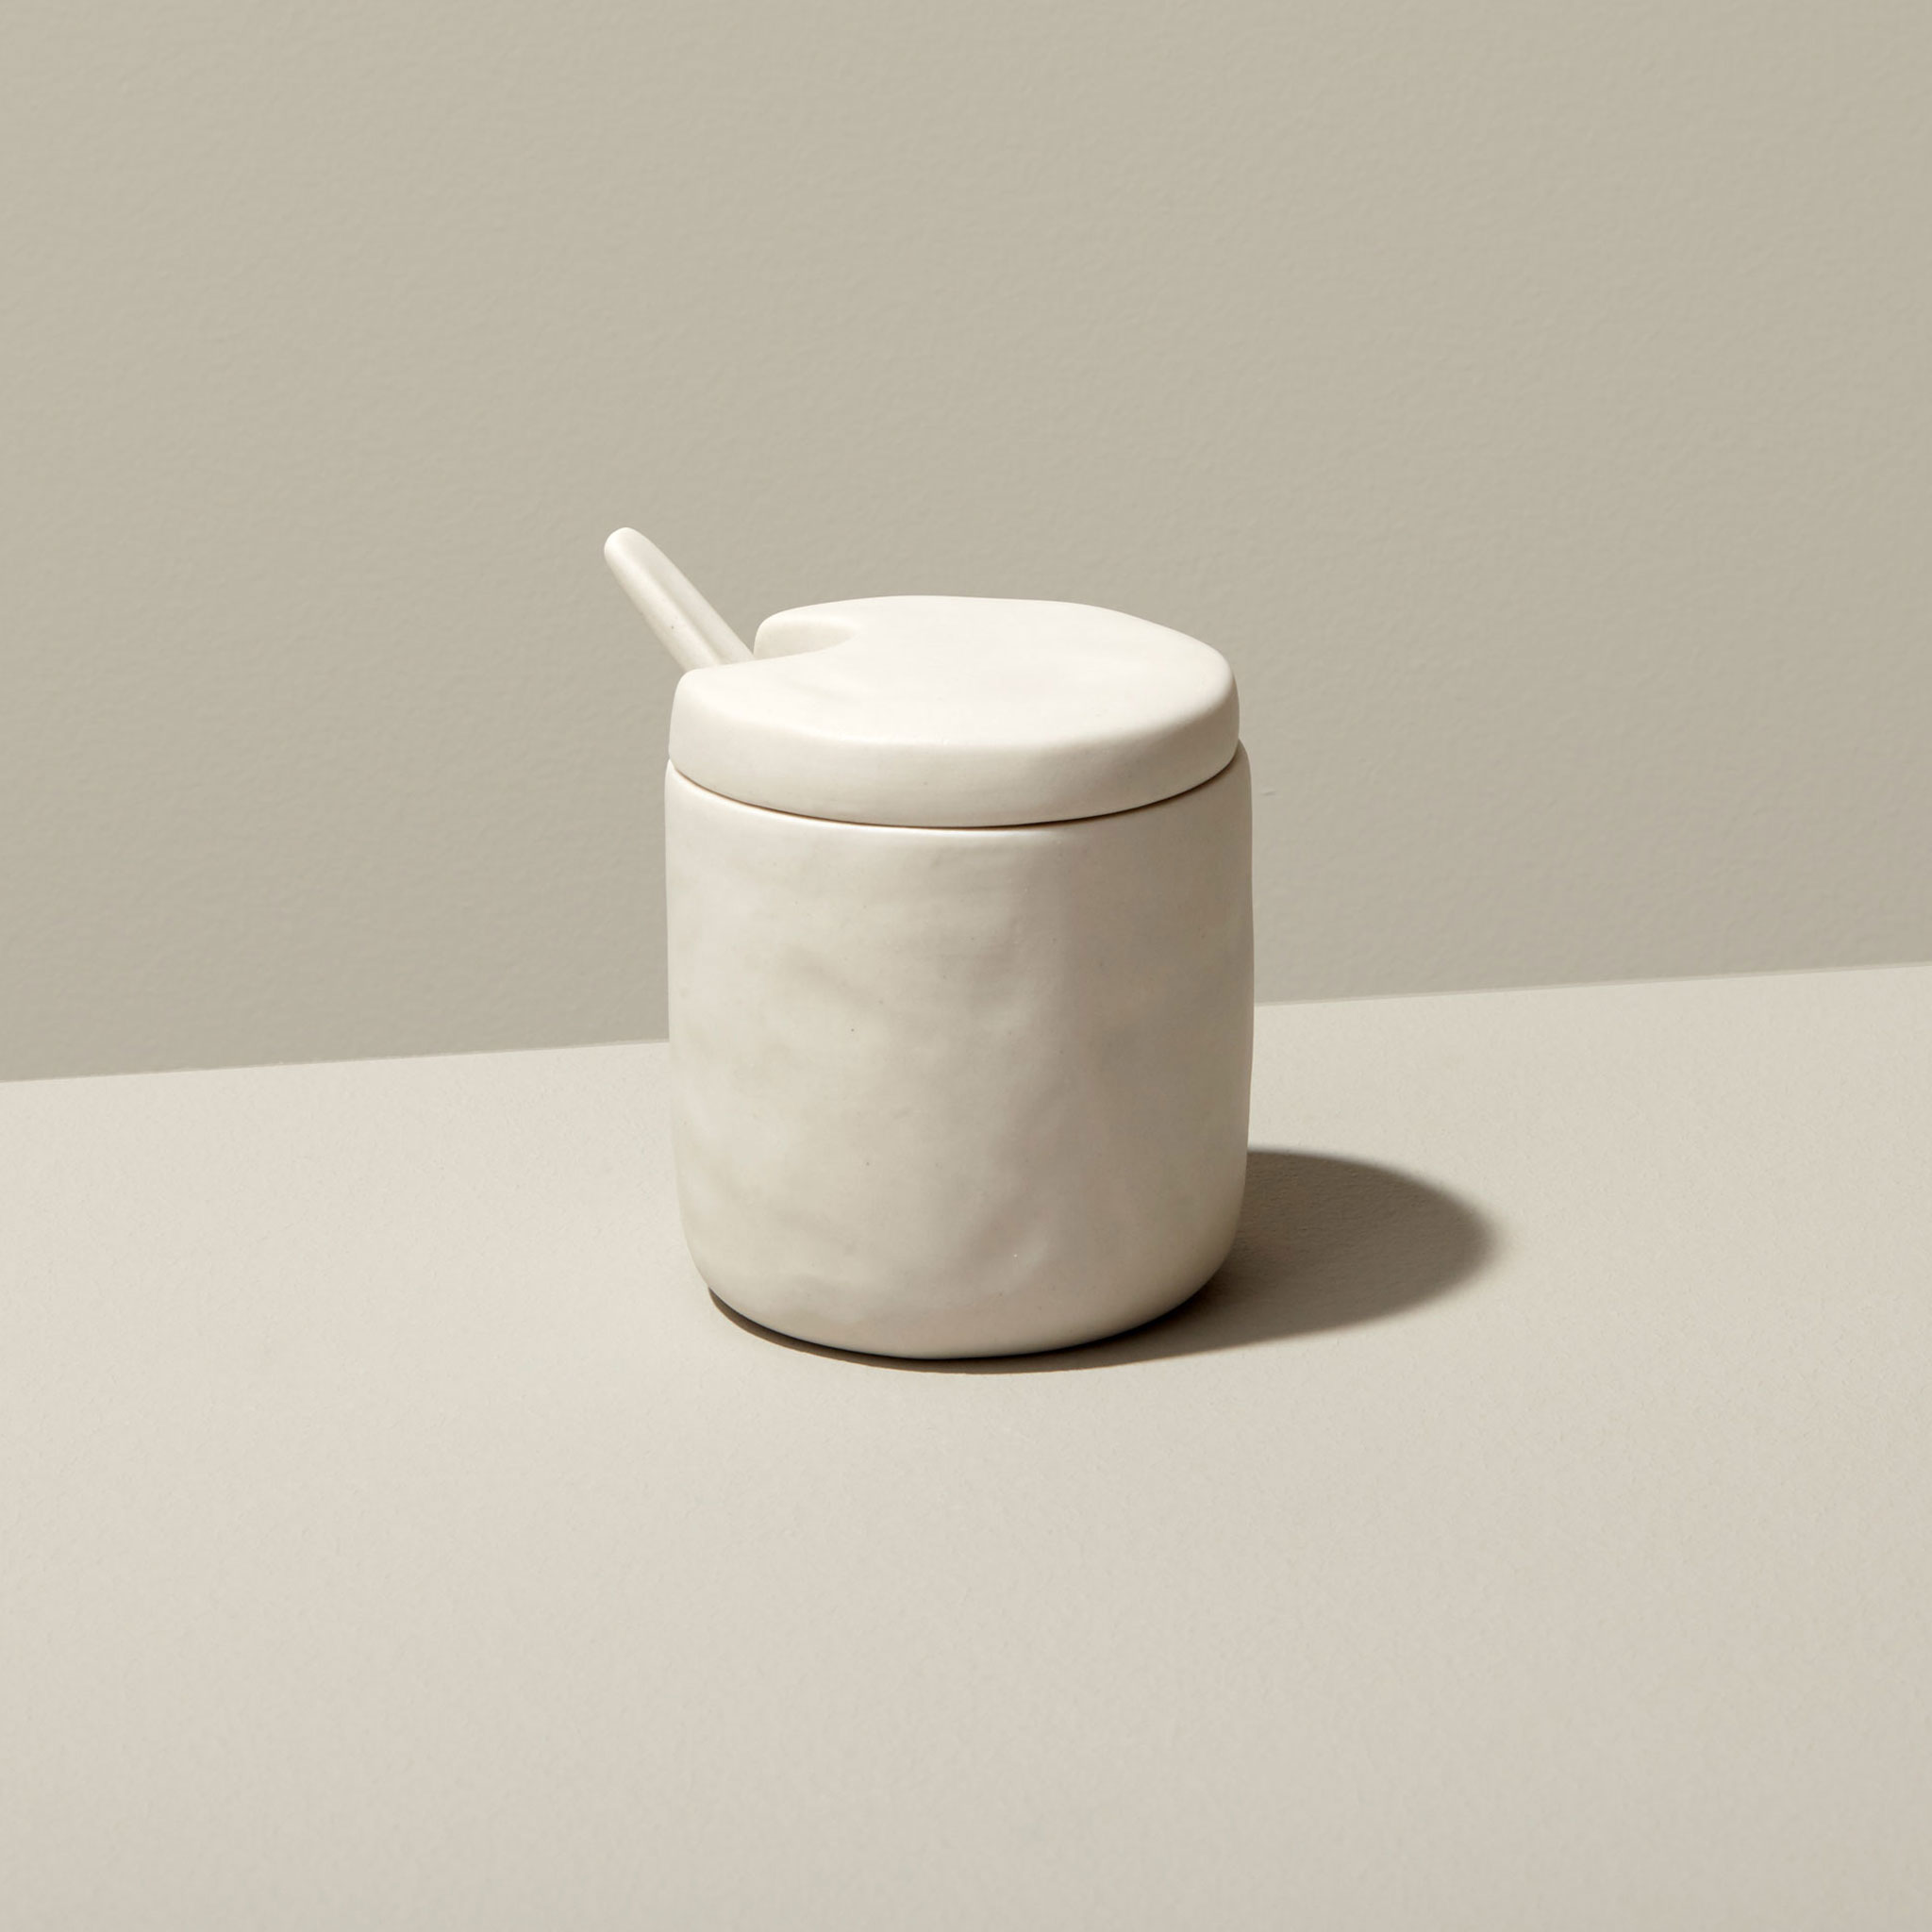 Be-Home_Stoneware-Cellar-and-Spoon-White_64-68